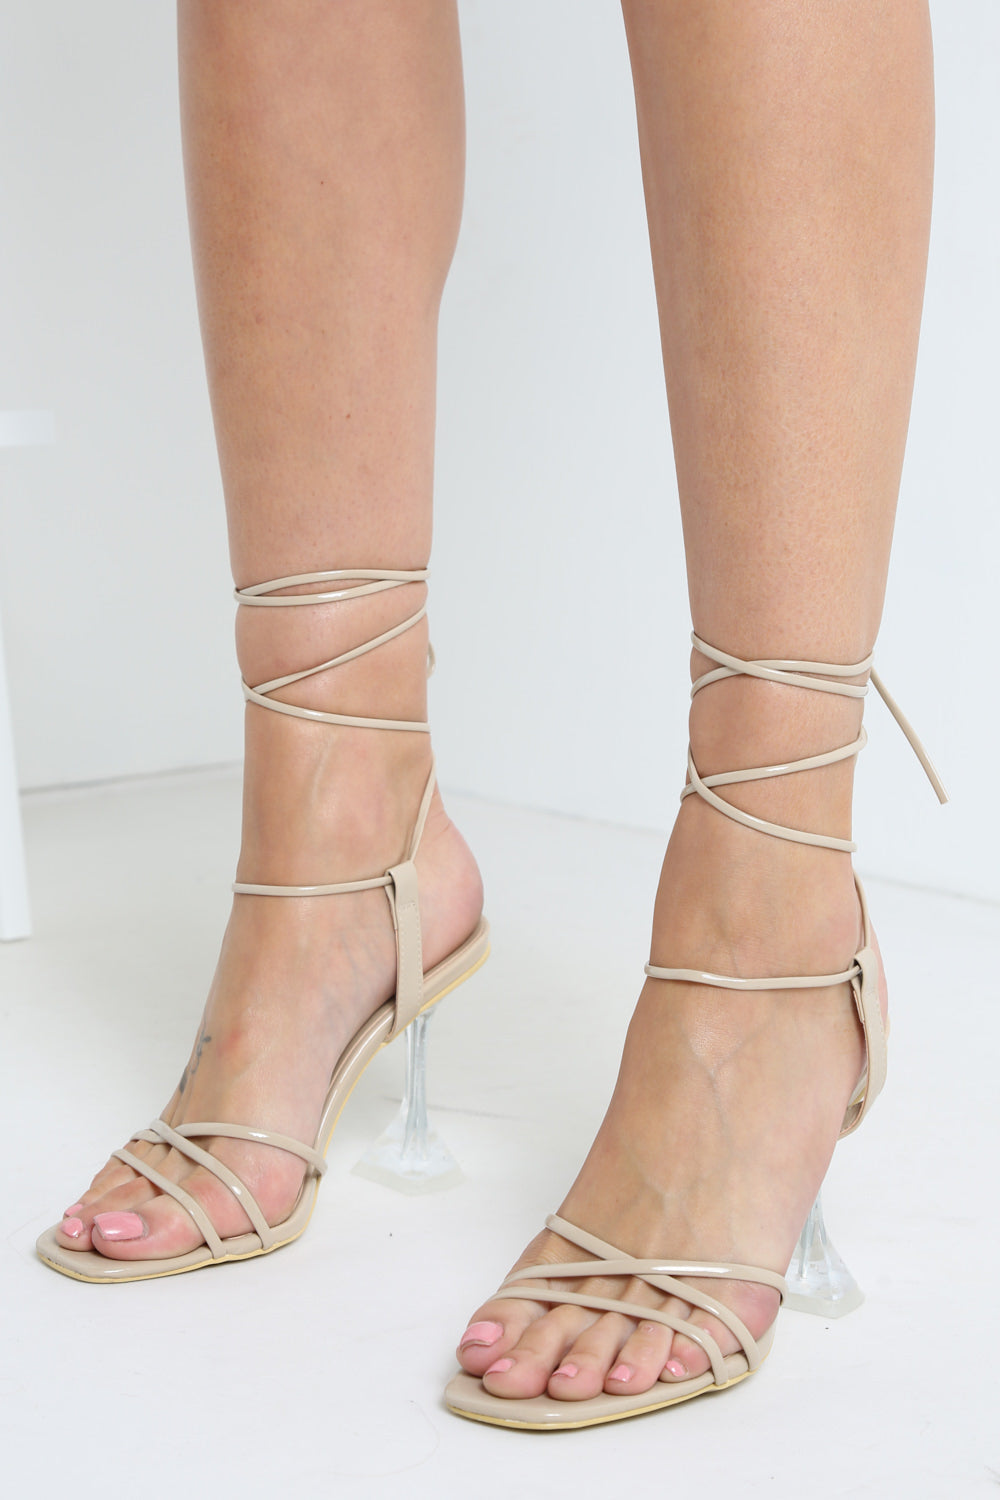 Nude Patent Wrap Around Cleat Block Heels